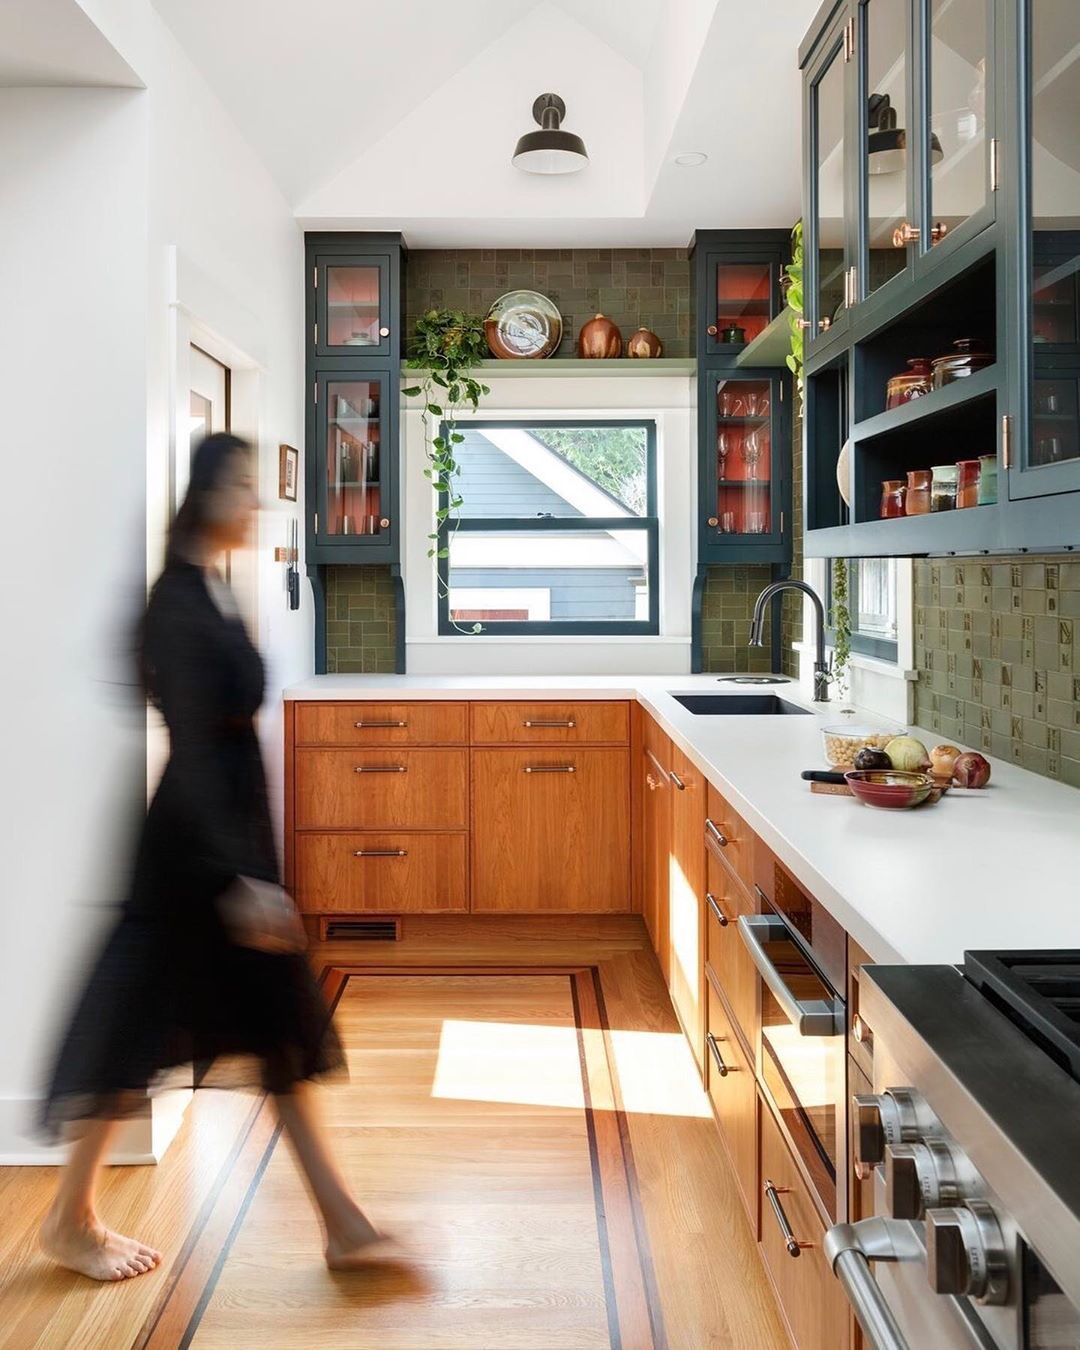 Dwell On Instagram If Walls Could Talk This Craftsman Style Bungalow In Portland Oreg In 2020 Simple Kitchen Remodel Craftsman Style Bungalow Modern Kitchen Design